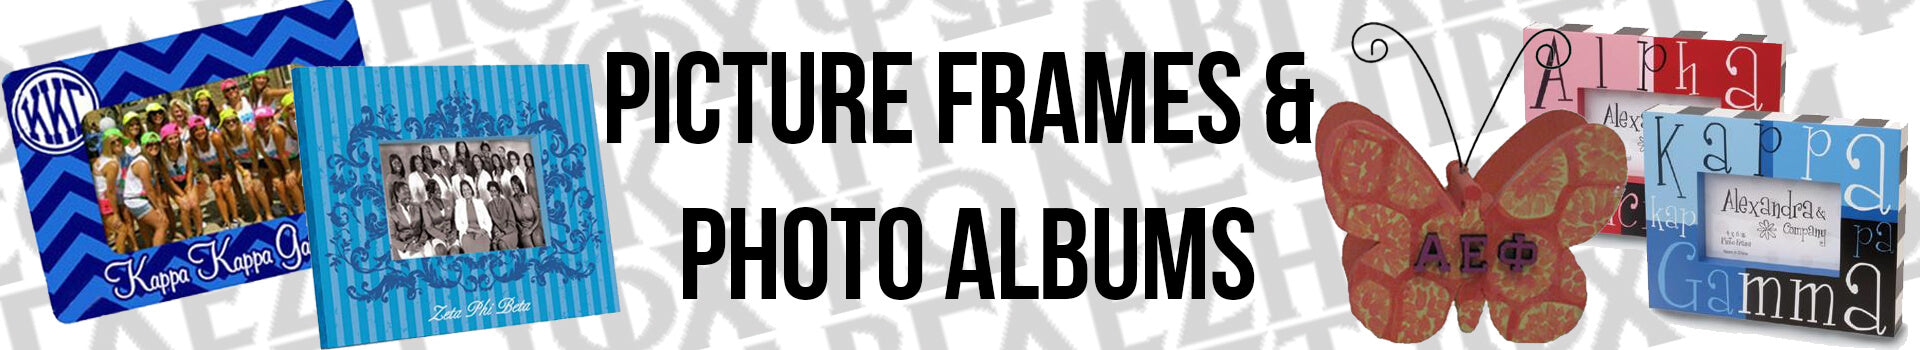 Fraternity and Sorority Picture Frames and Photo Albums